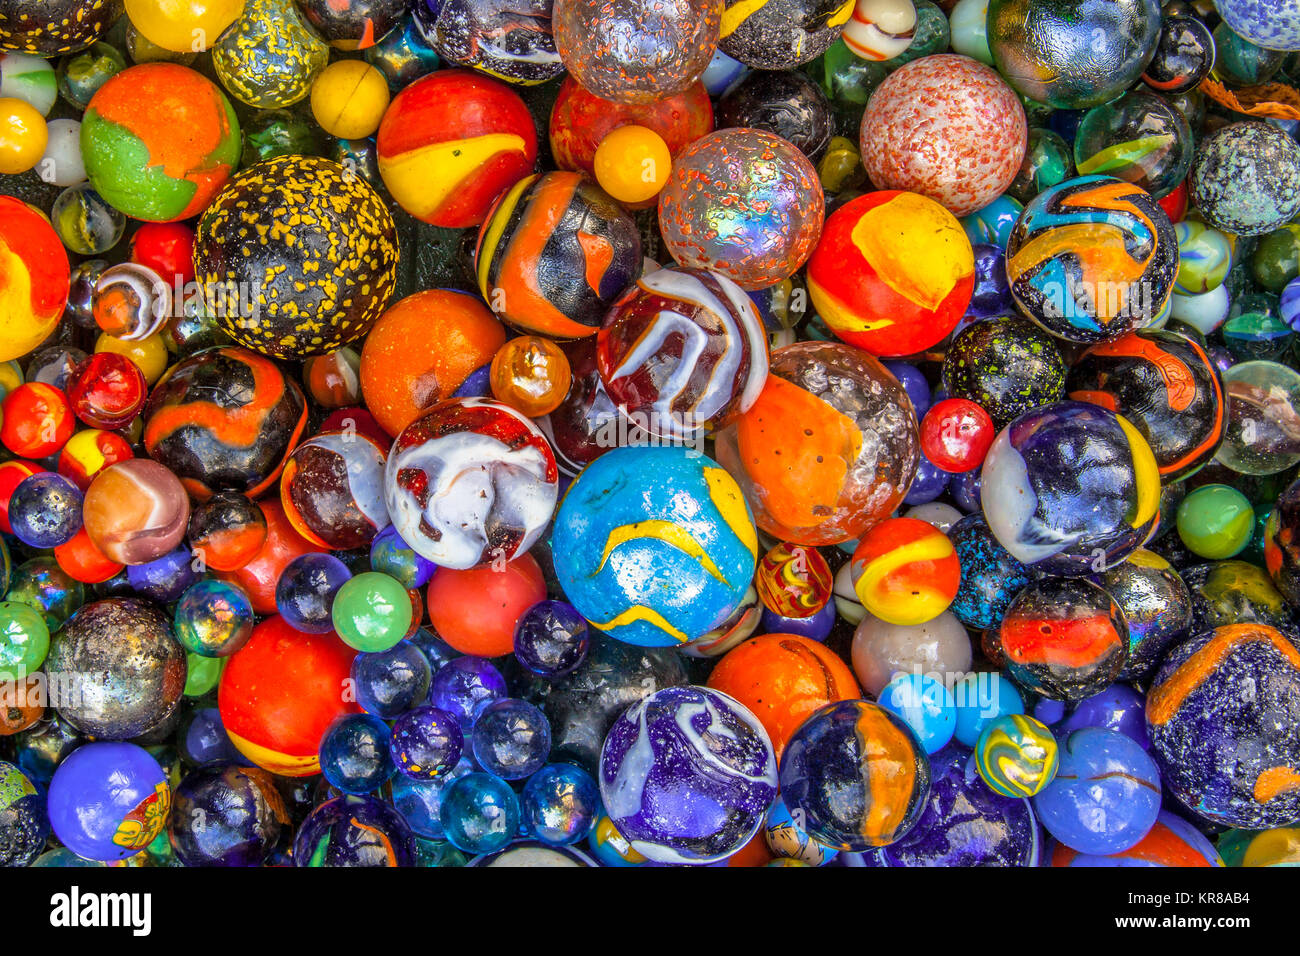 Glass marbles of different sizes in a color pattern as methaphor for multicultural community diversity - Stock Image